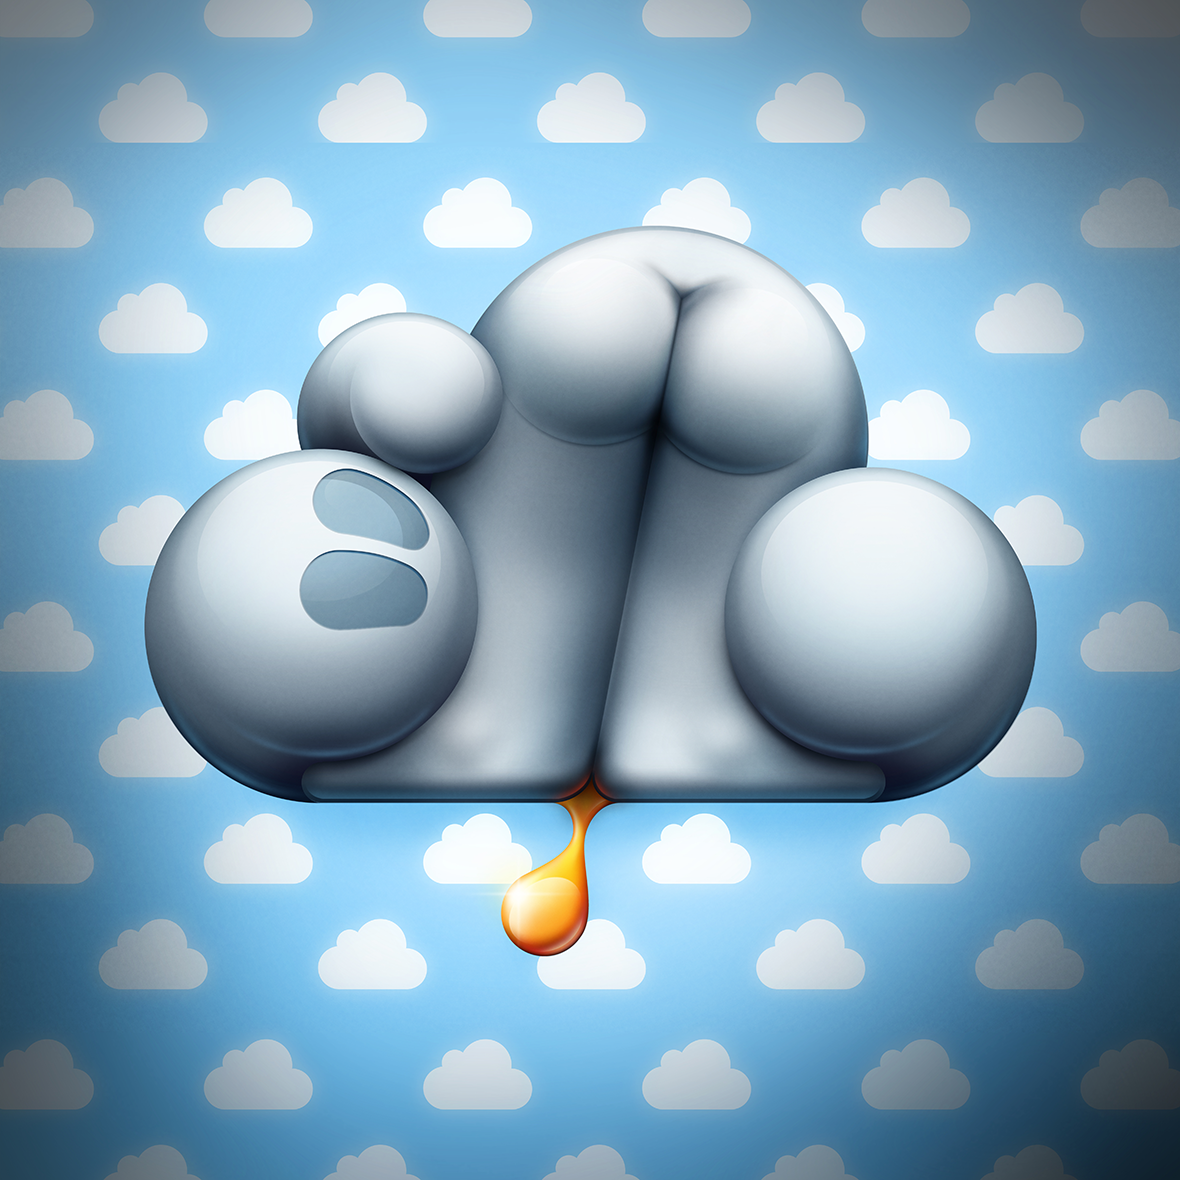 material_iconic_illustration_andre_levy_zhion_cloud_golden_showers_character.png